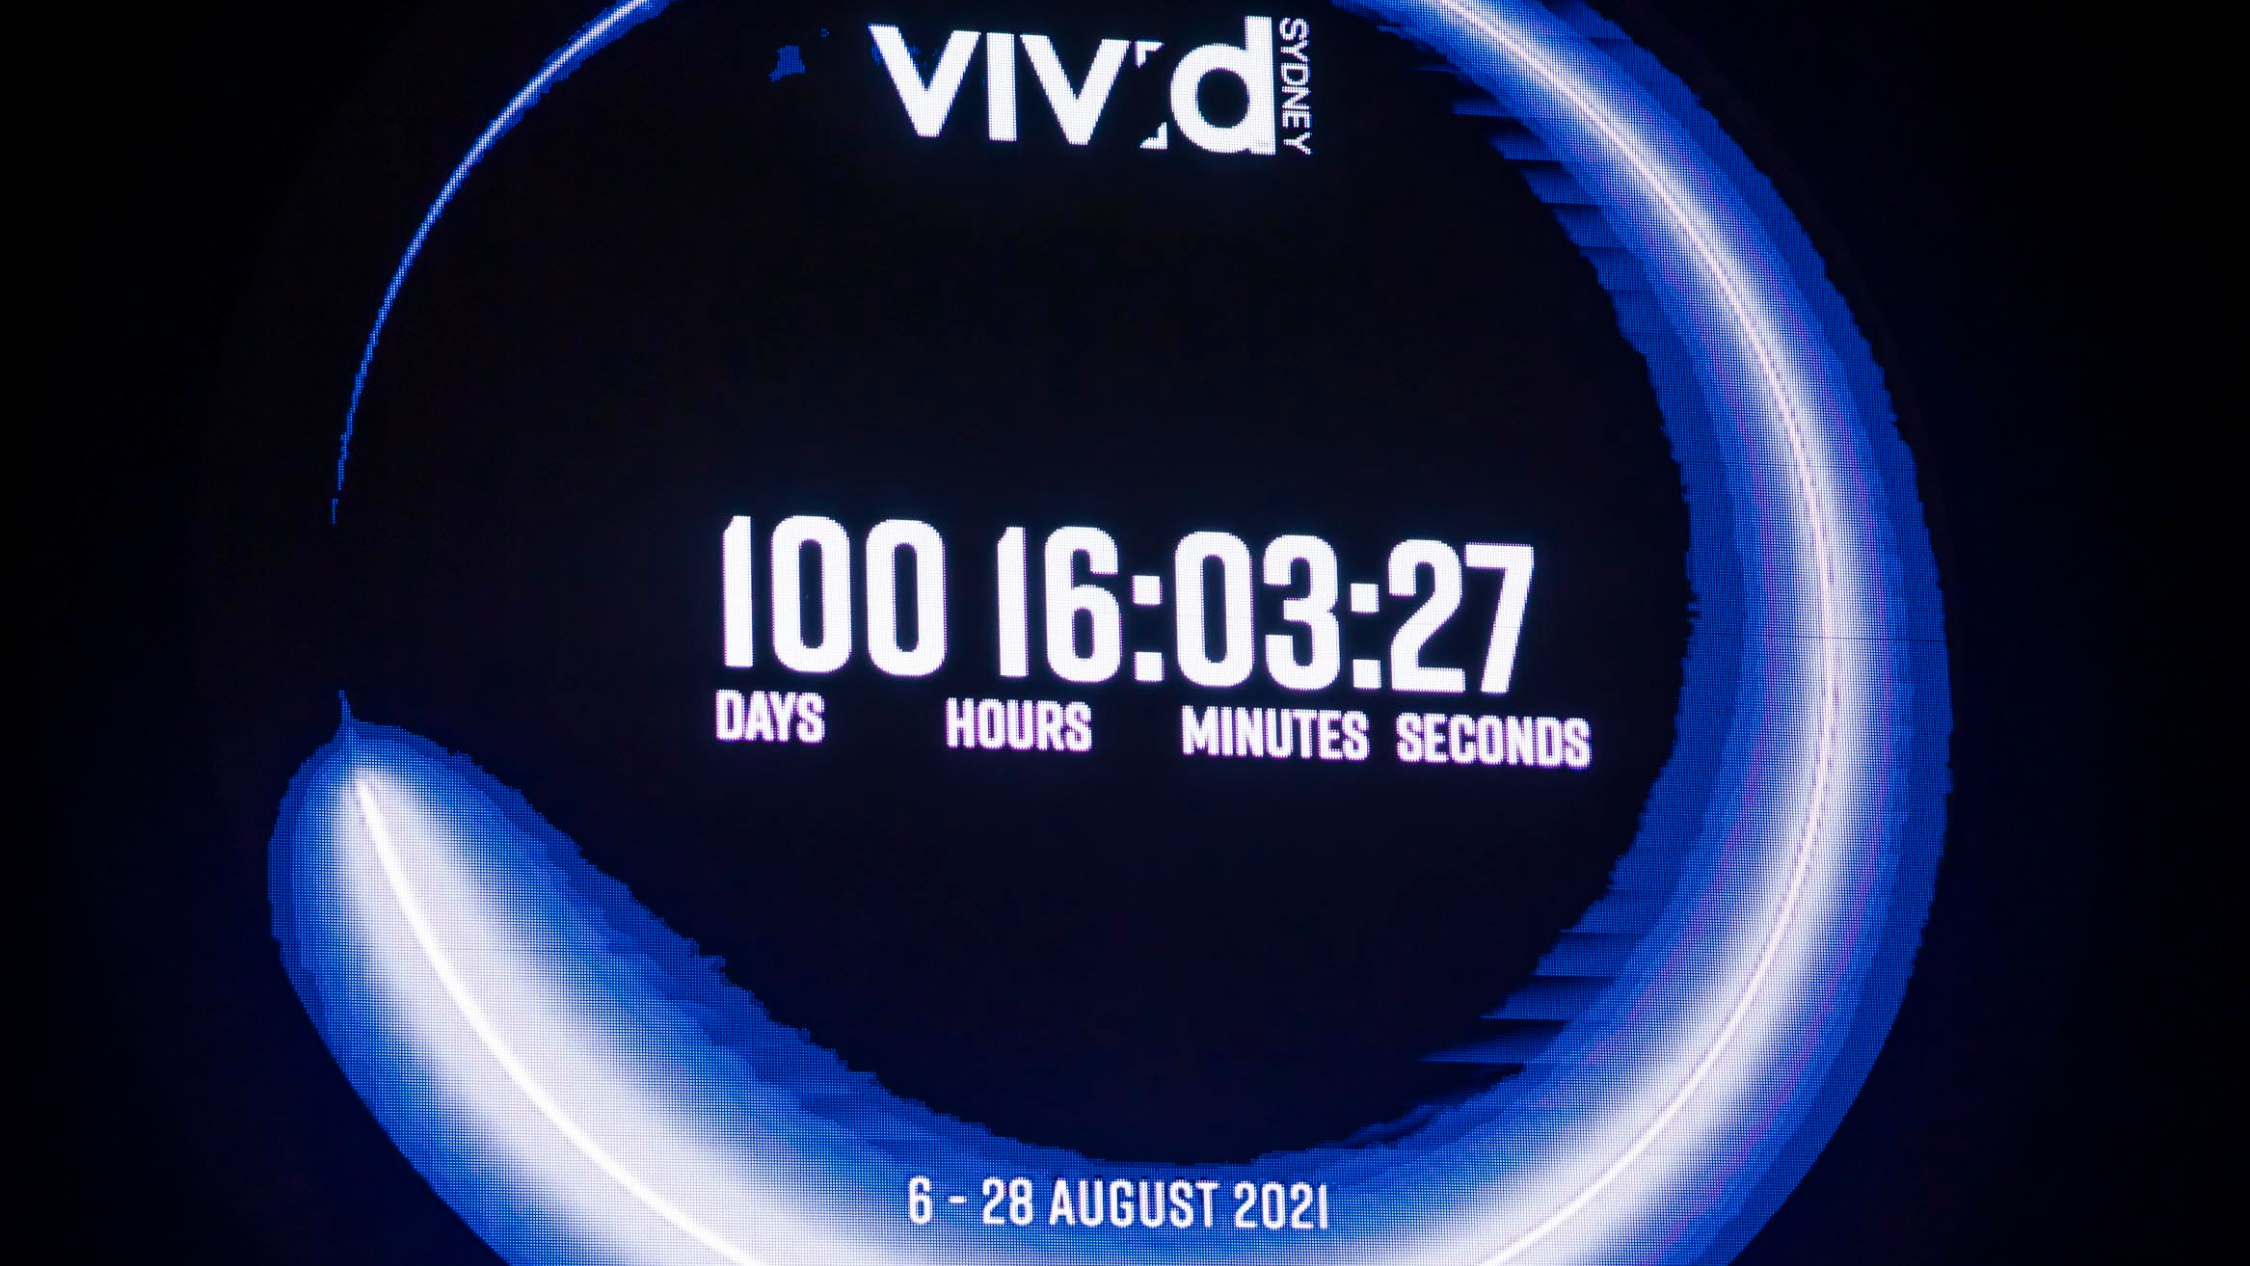 A giant glowing clock counting down to the first night of Vivid has appeared in the Rocks